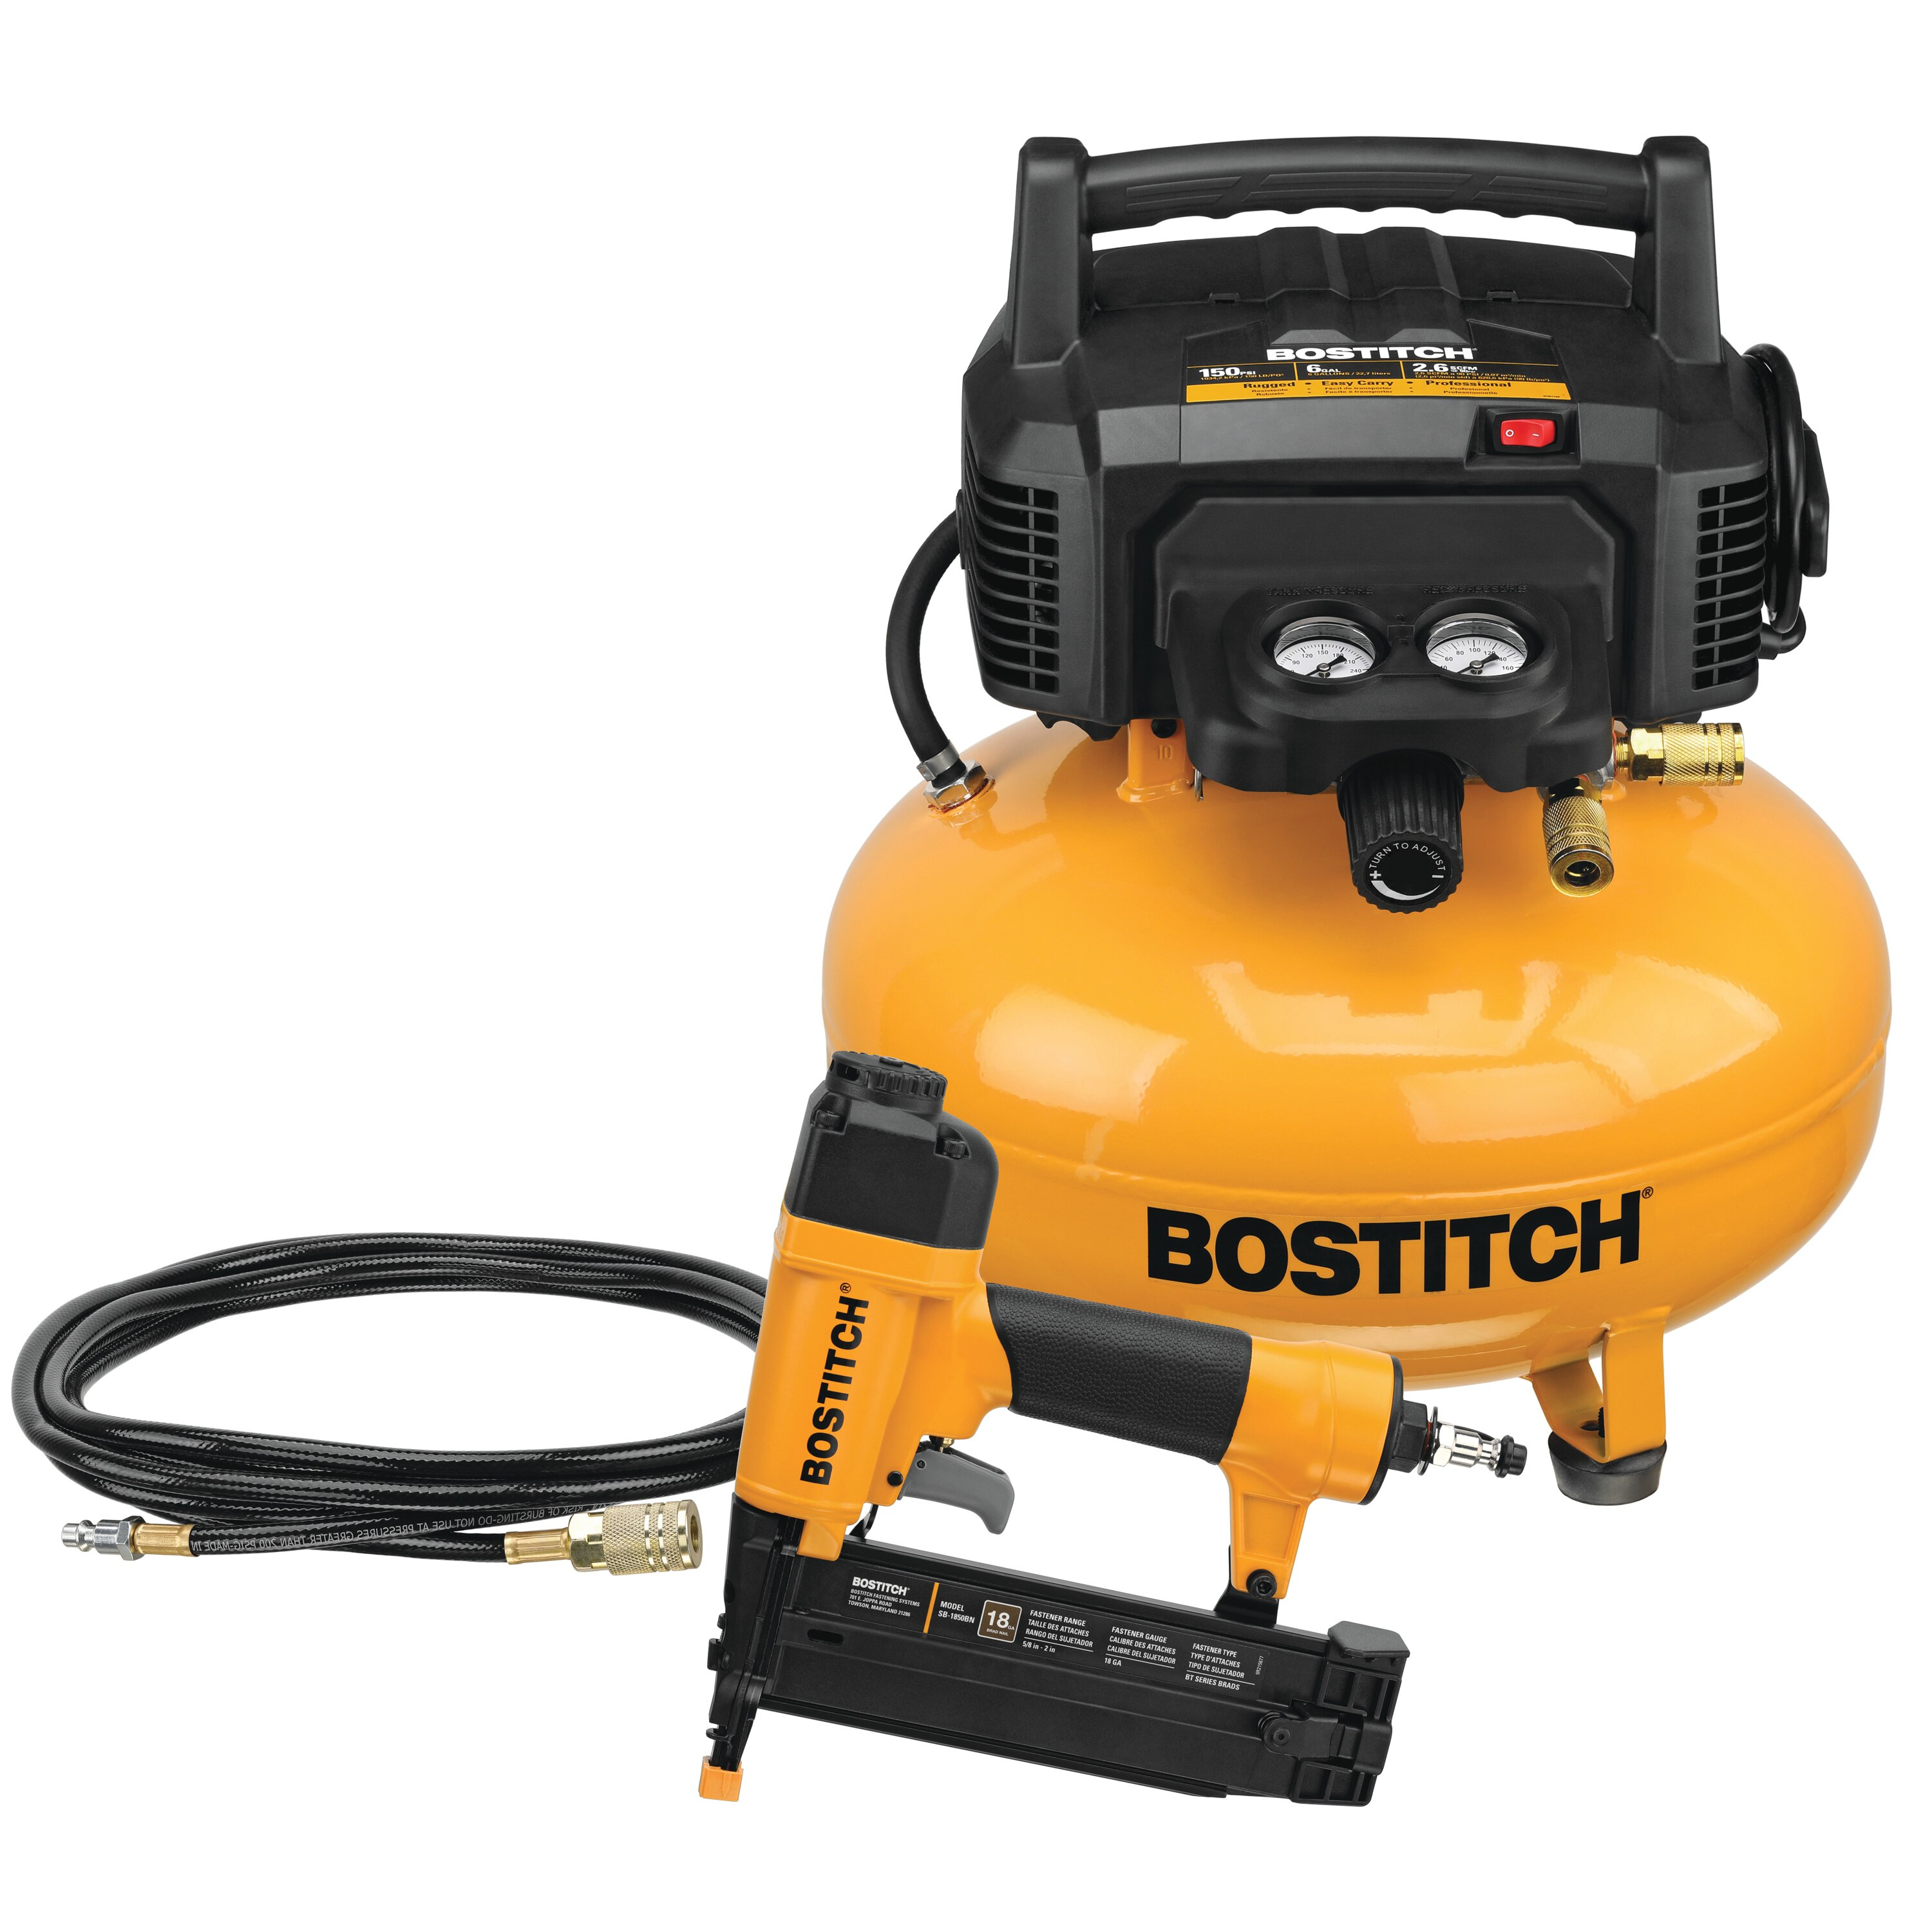 Bostitch - 1ToolCompressor Combo Kit - BTFP1KIT